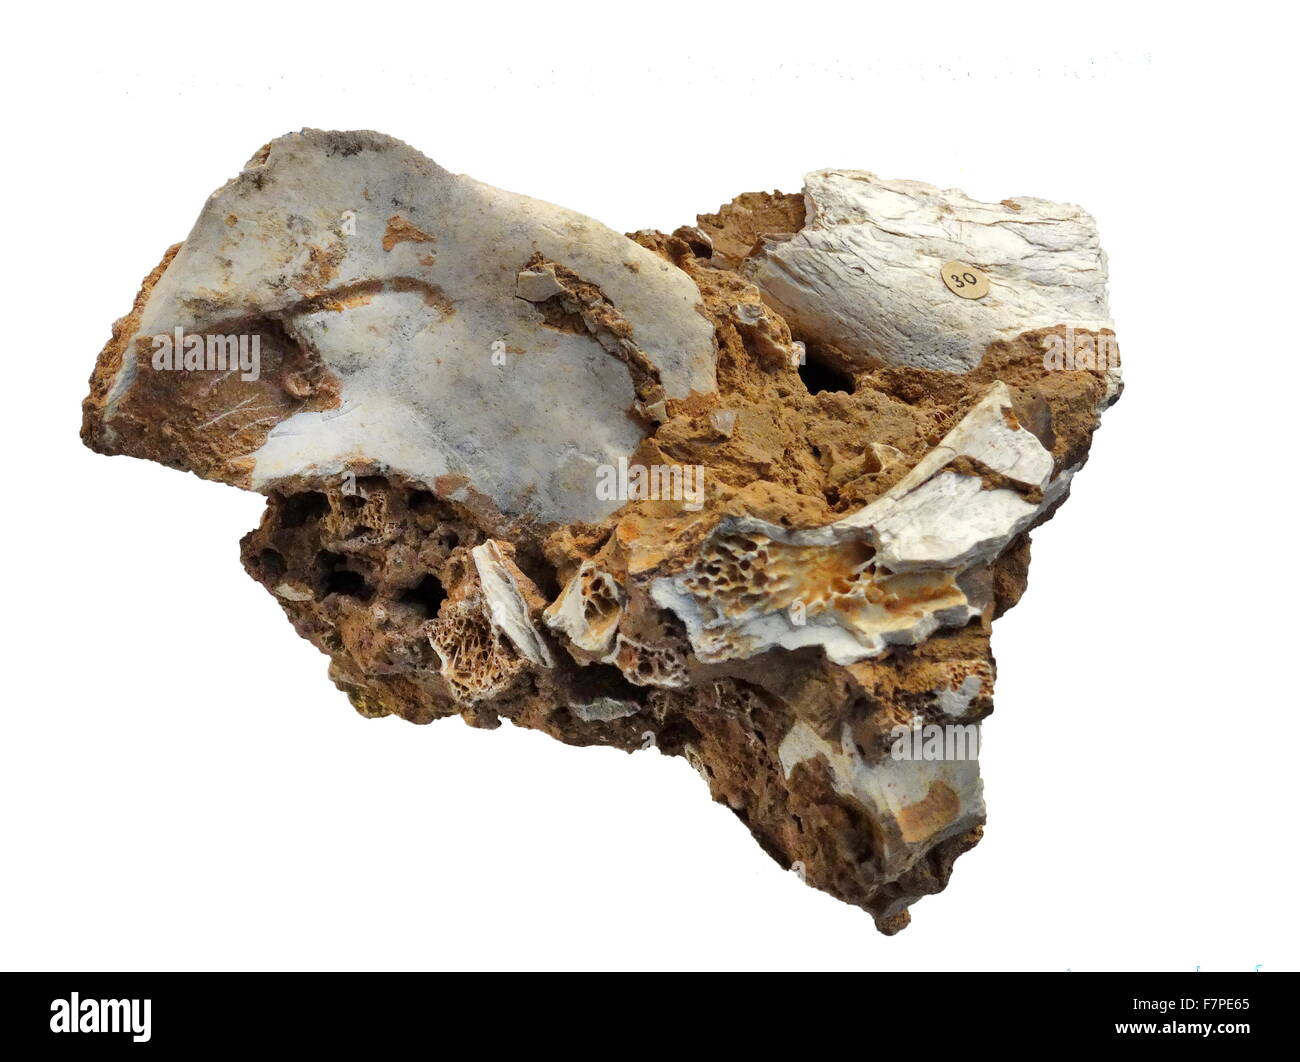 Bones and teeth of an antelope preserved in rock, from a cave floor in the Balearic Islands. Dated 2015 - Stock Image